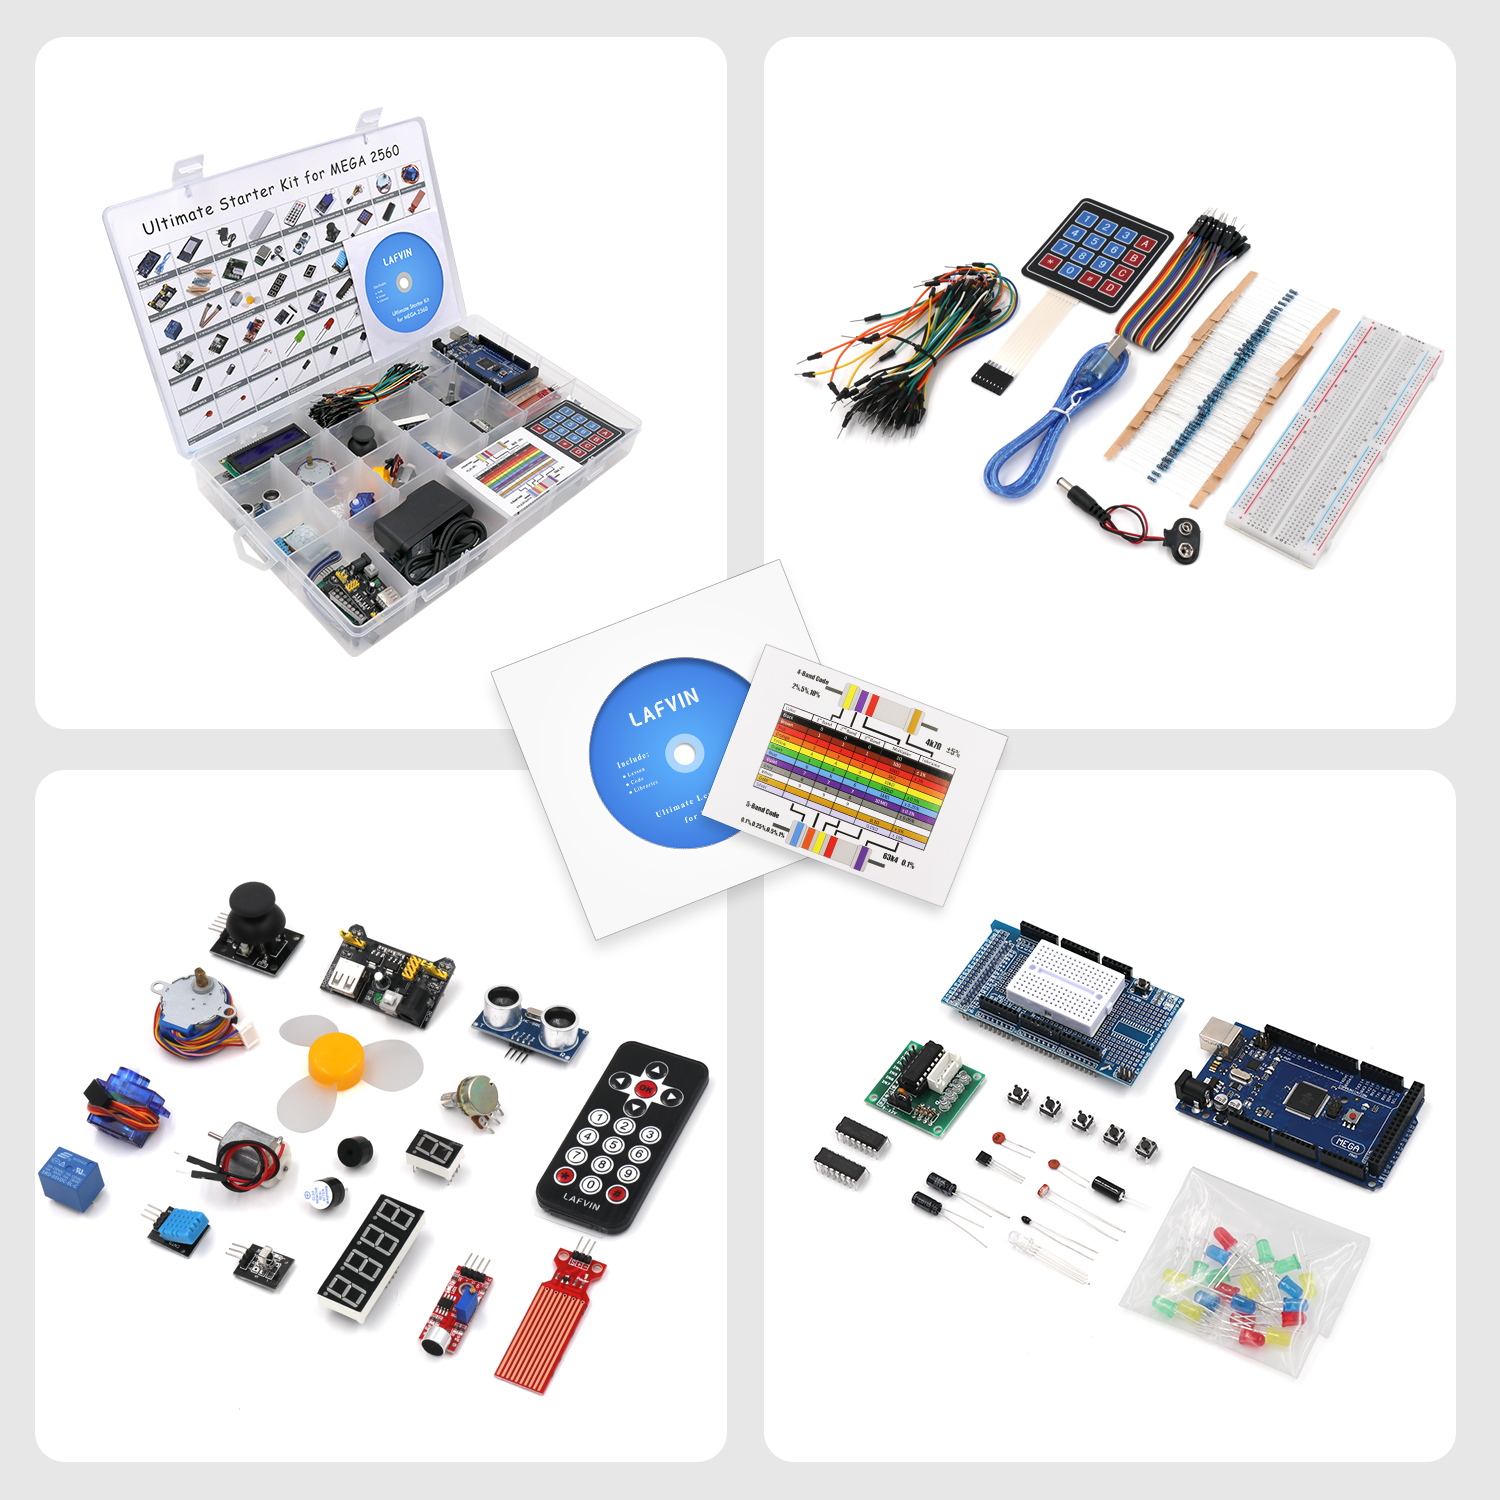 Breadboard Resistor Led For Arduino Uno Lafvin Electronic Fun Kit Bundle With Power Supply Module Capacitor